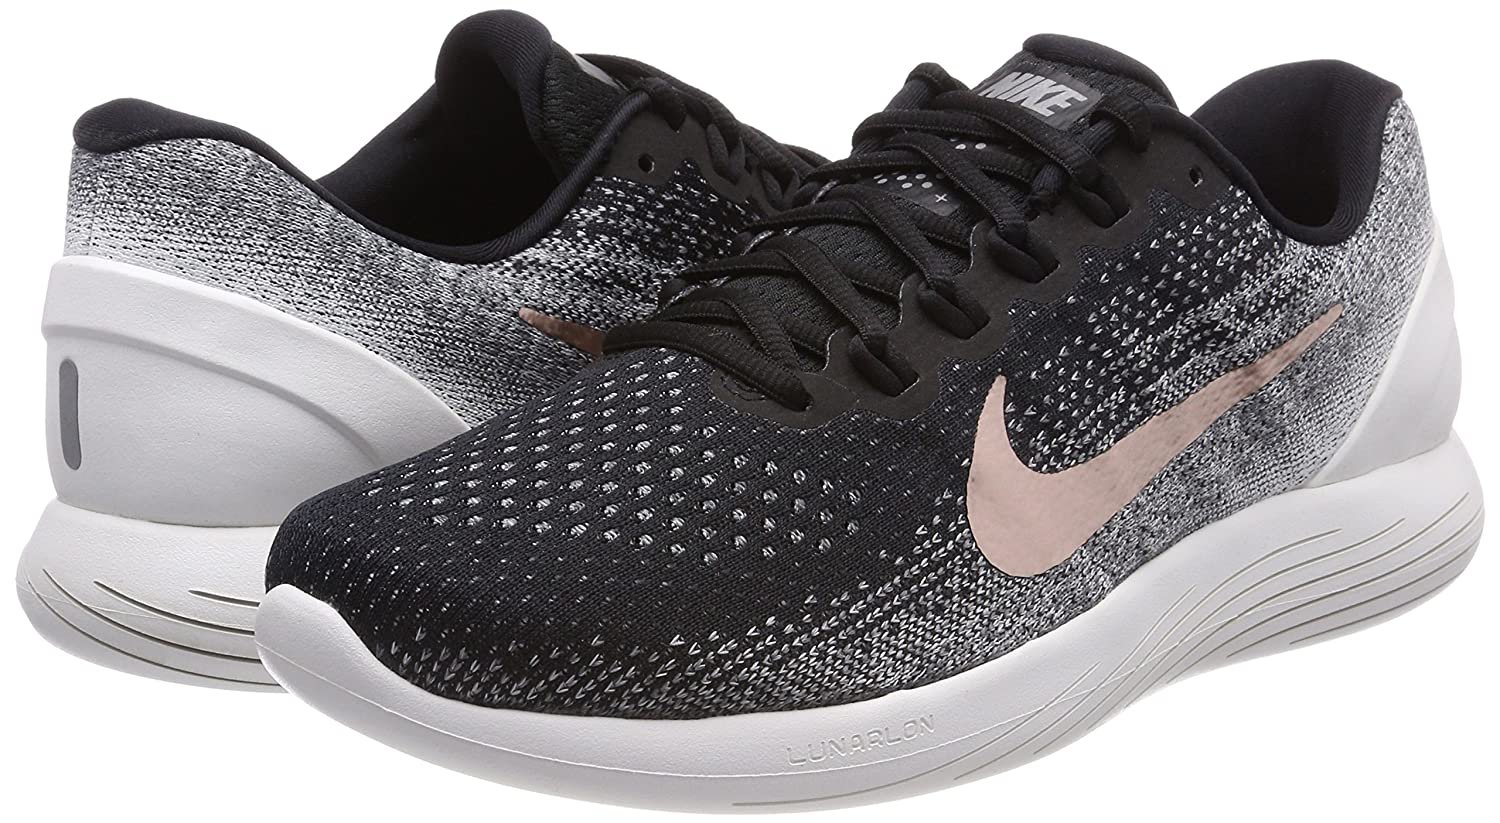 Enderezar sobre lluvia  Nike Lunarglide 9 X-Plore Mens Running Trainers 904745 Sneakers Shoes (UK  9.5 US 10.5 EU 44.5, Black Metallic red Bronze 001): Amazon.in: Shoes &  Handbags